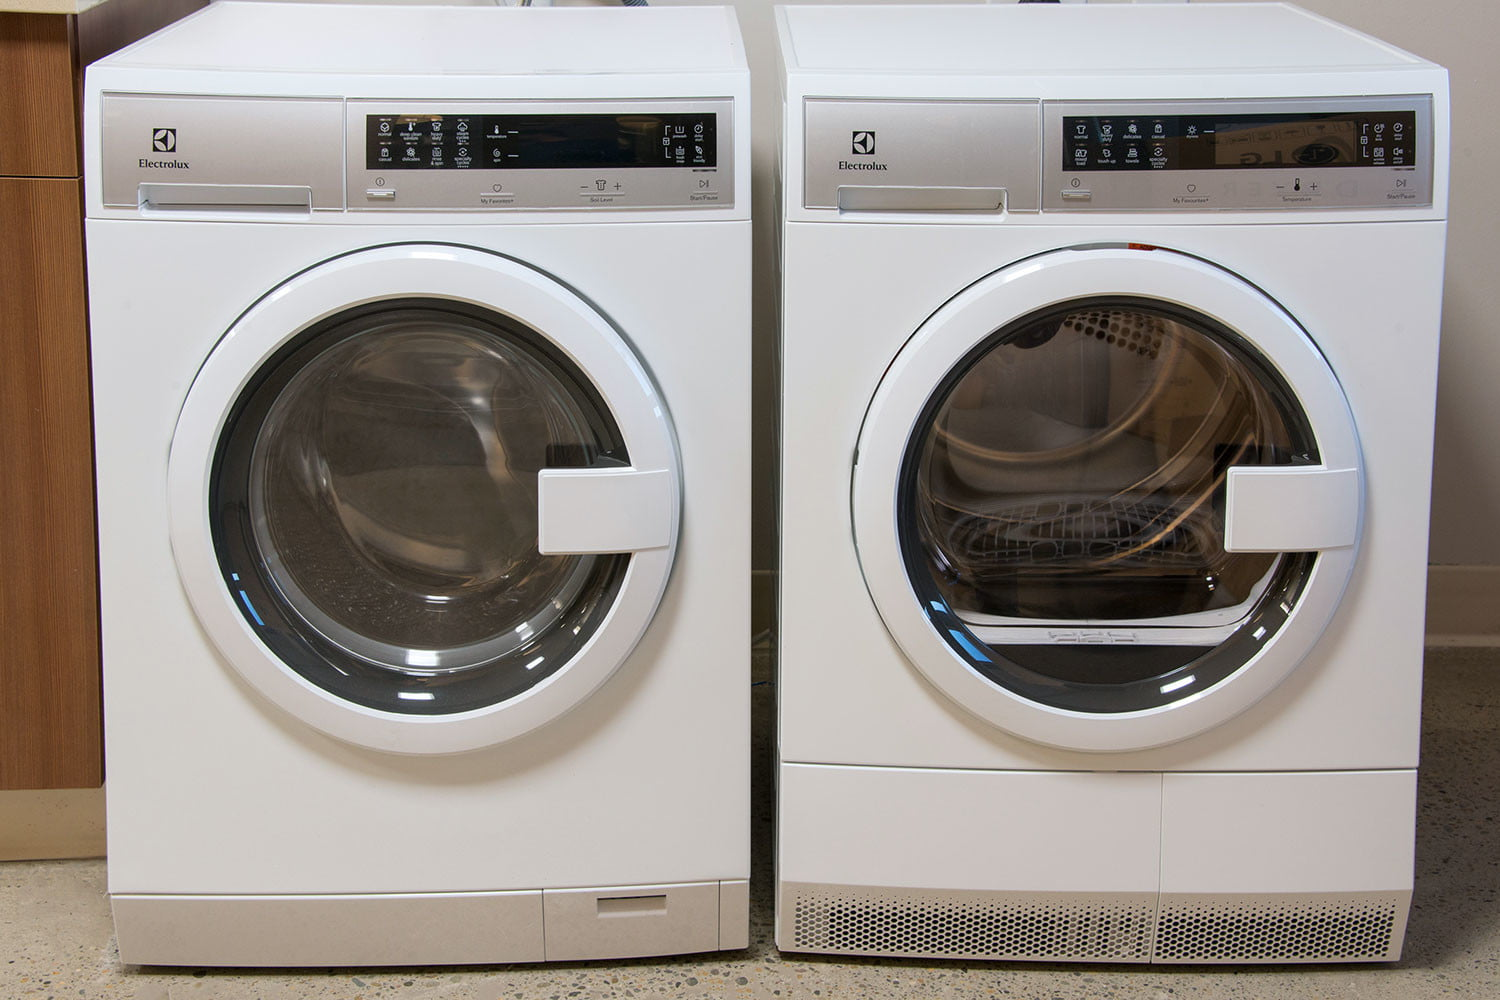 Electrolux EIFLS20QSW 24-Inch Compact Washer Review   Digital Trends